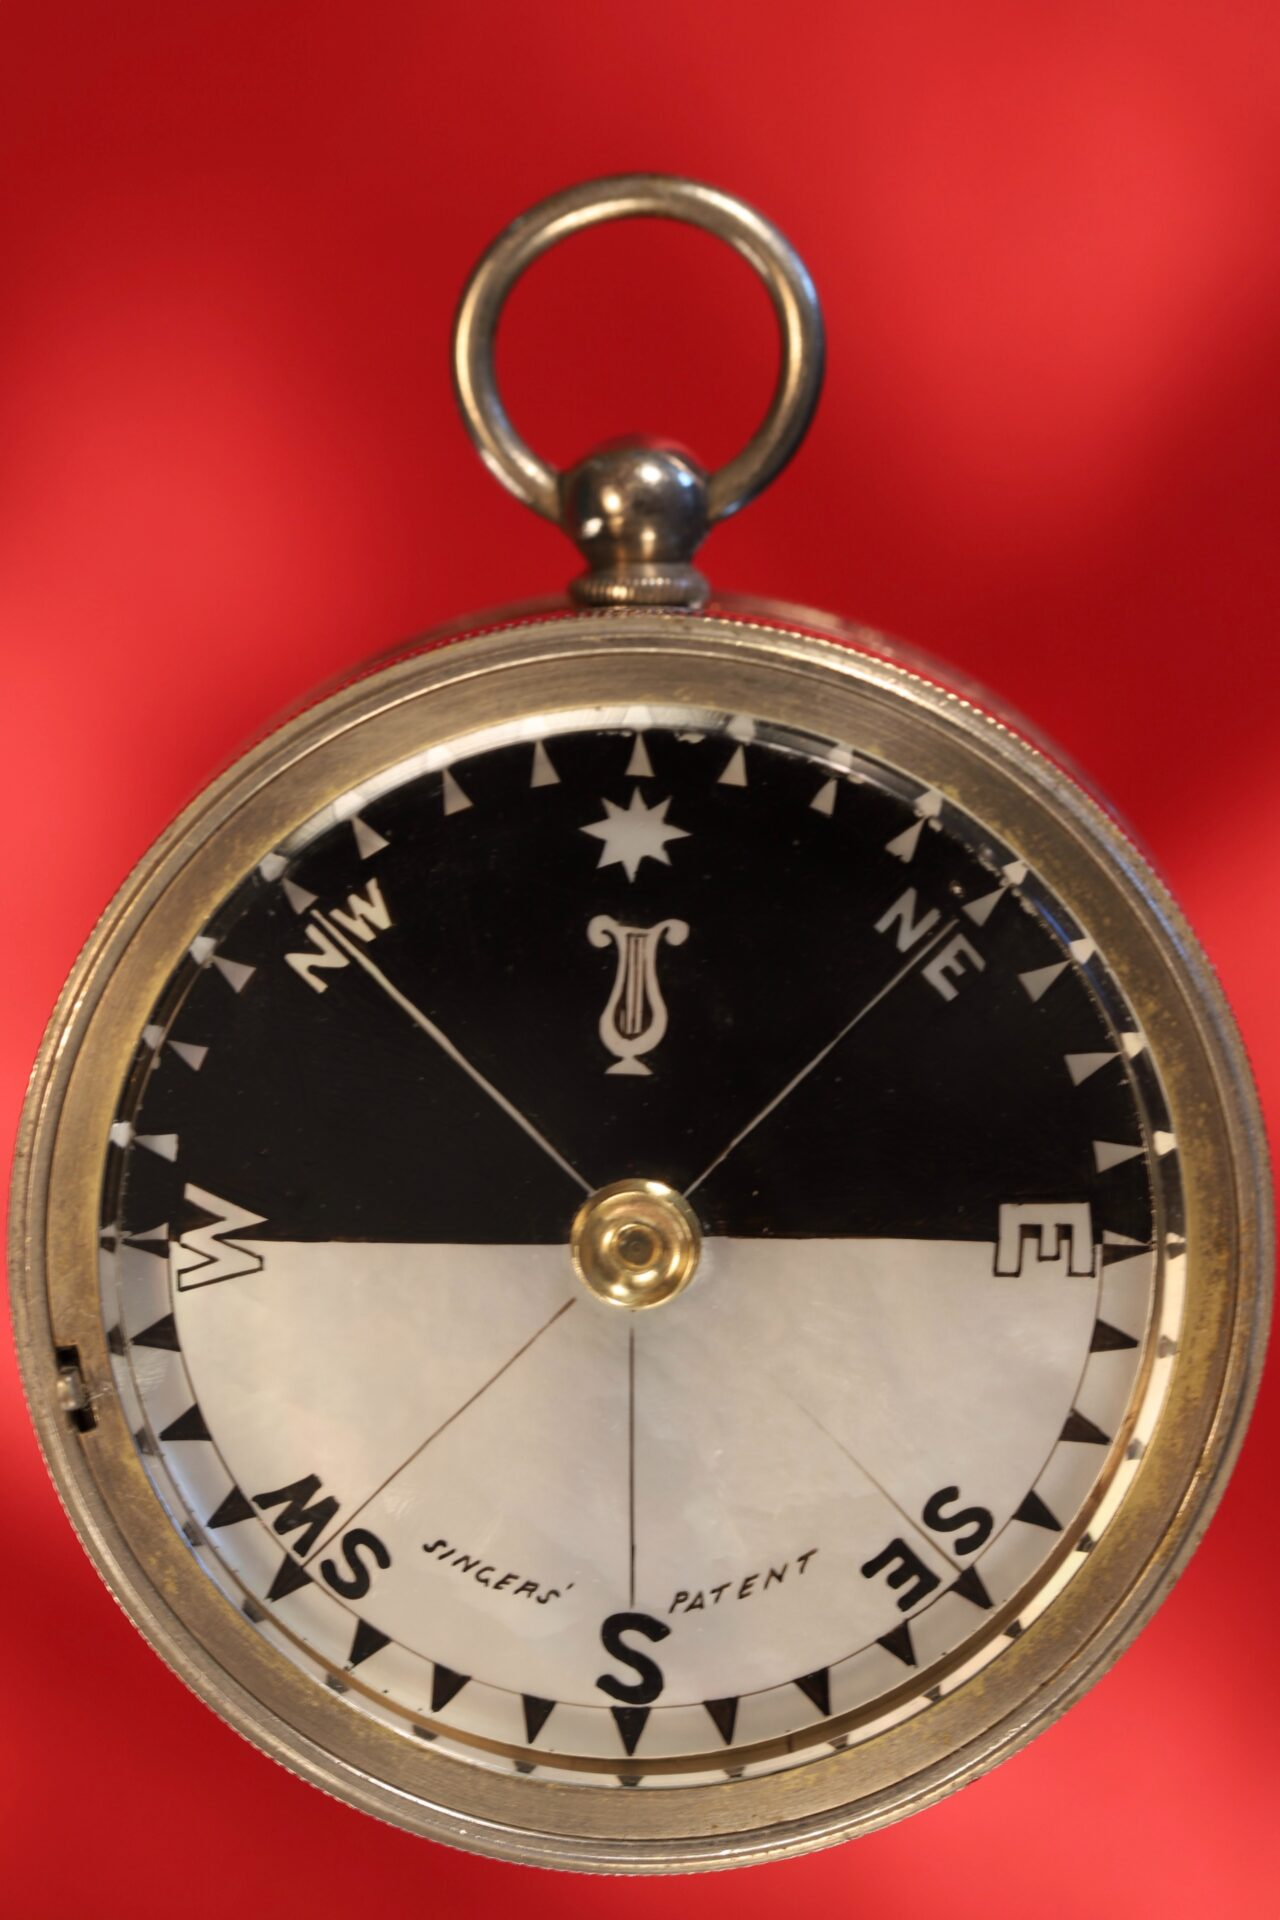 Image of Army & Navy COSL Pocket Barometer Compendium c1880 showing compass